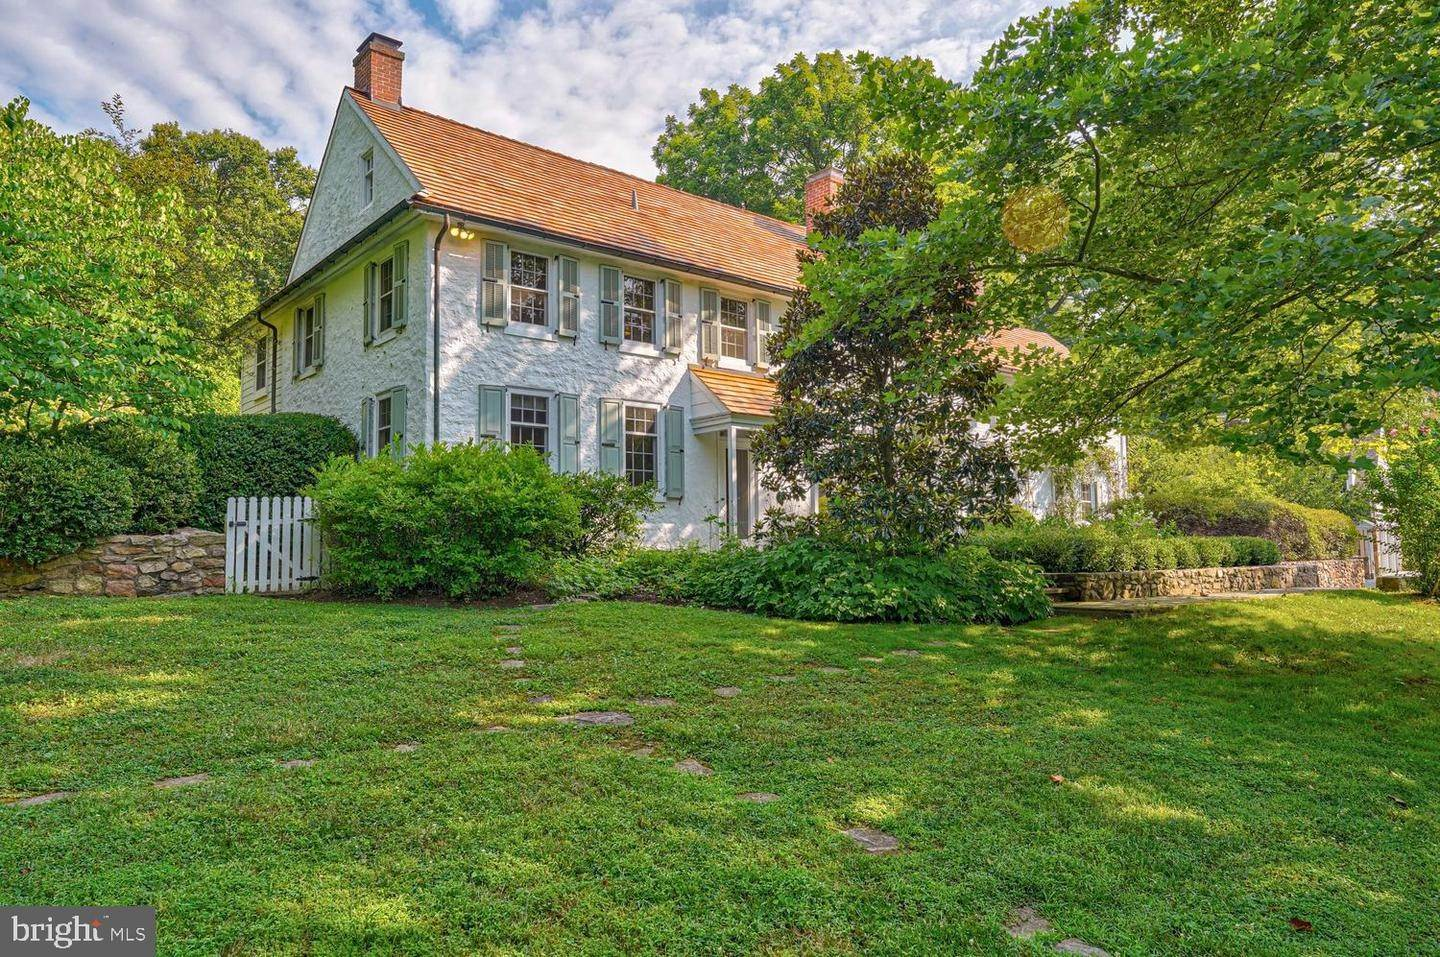 4. Detached House for Sale at 401 W LOCUST Lane Kennett Square, Pennsylvania 19348 United States